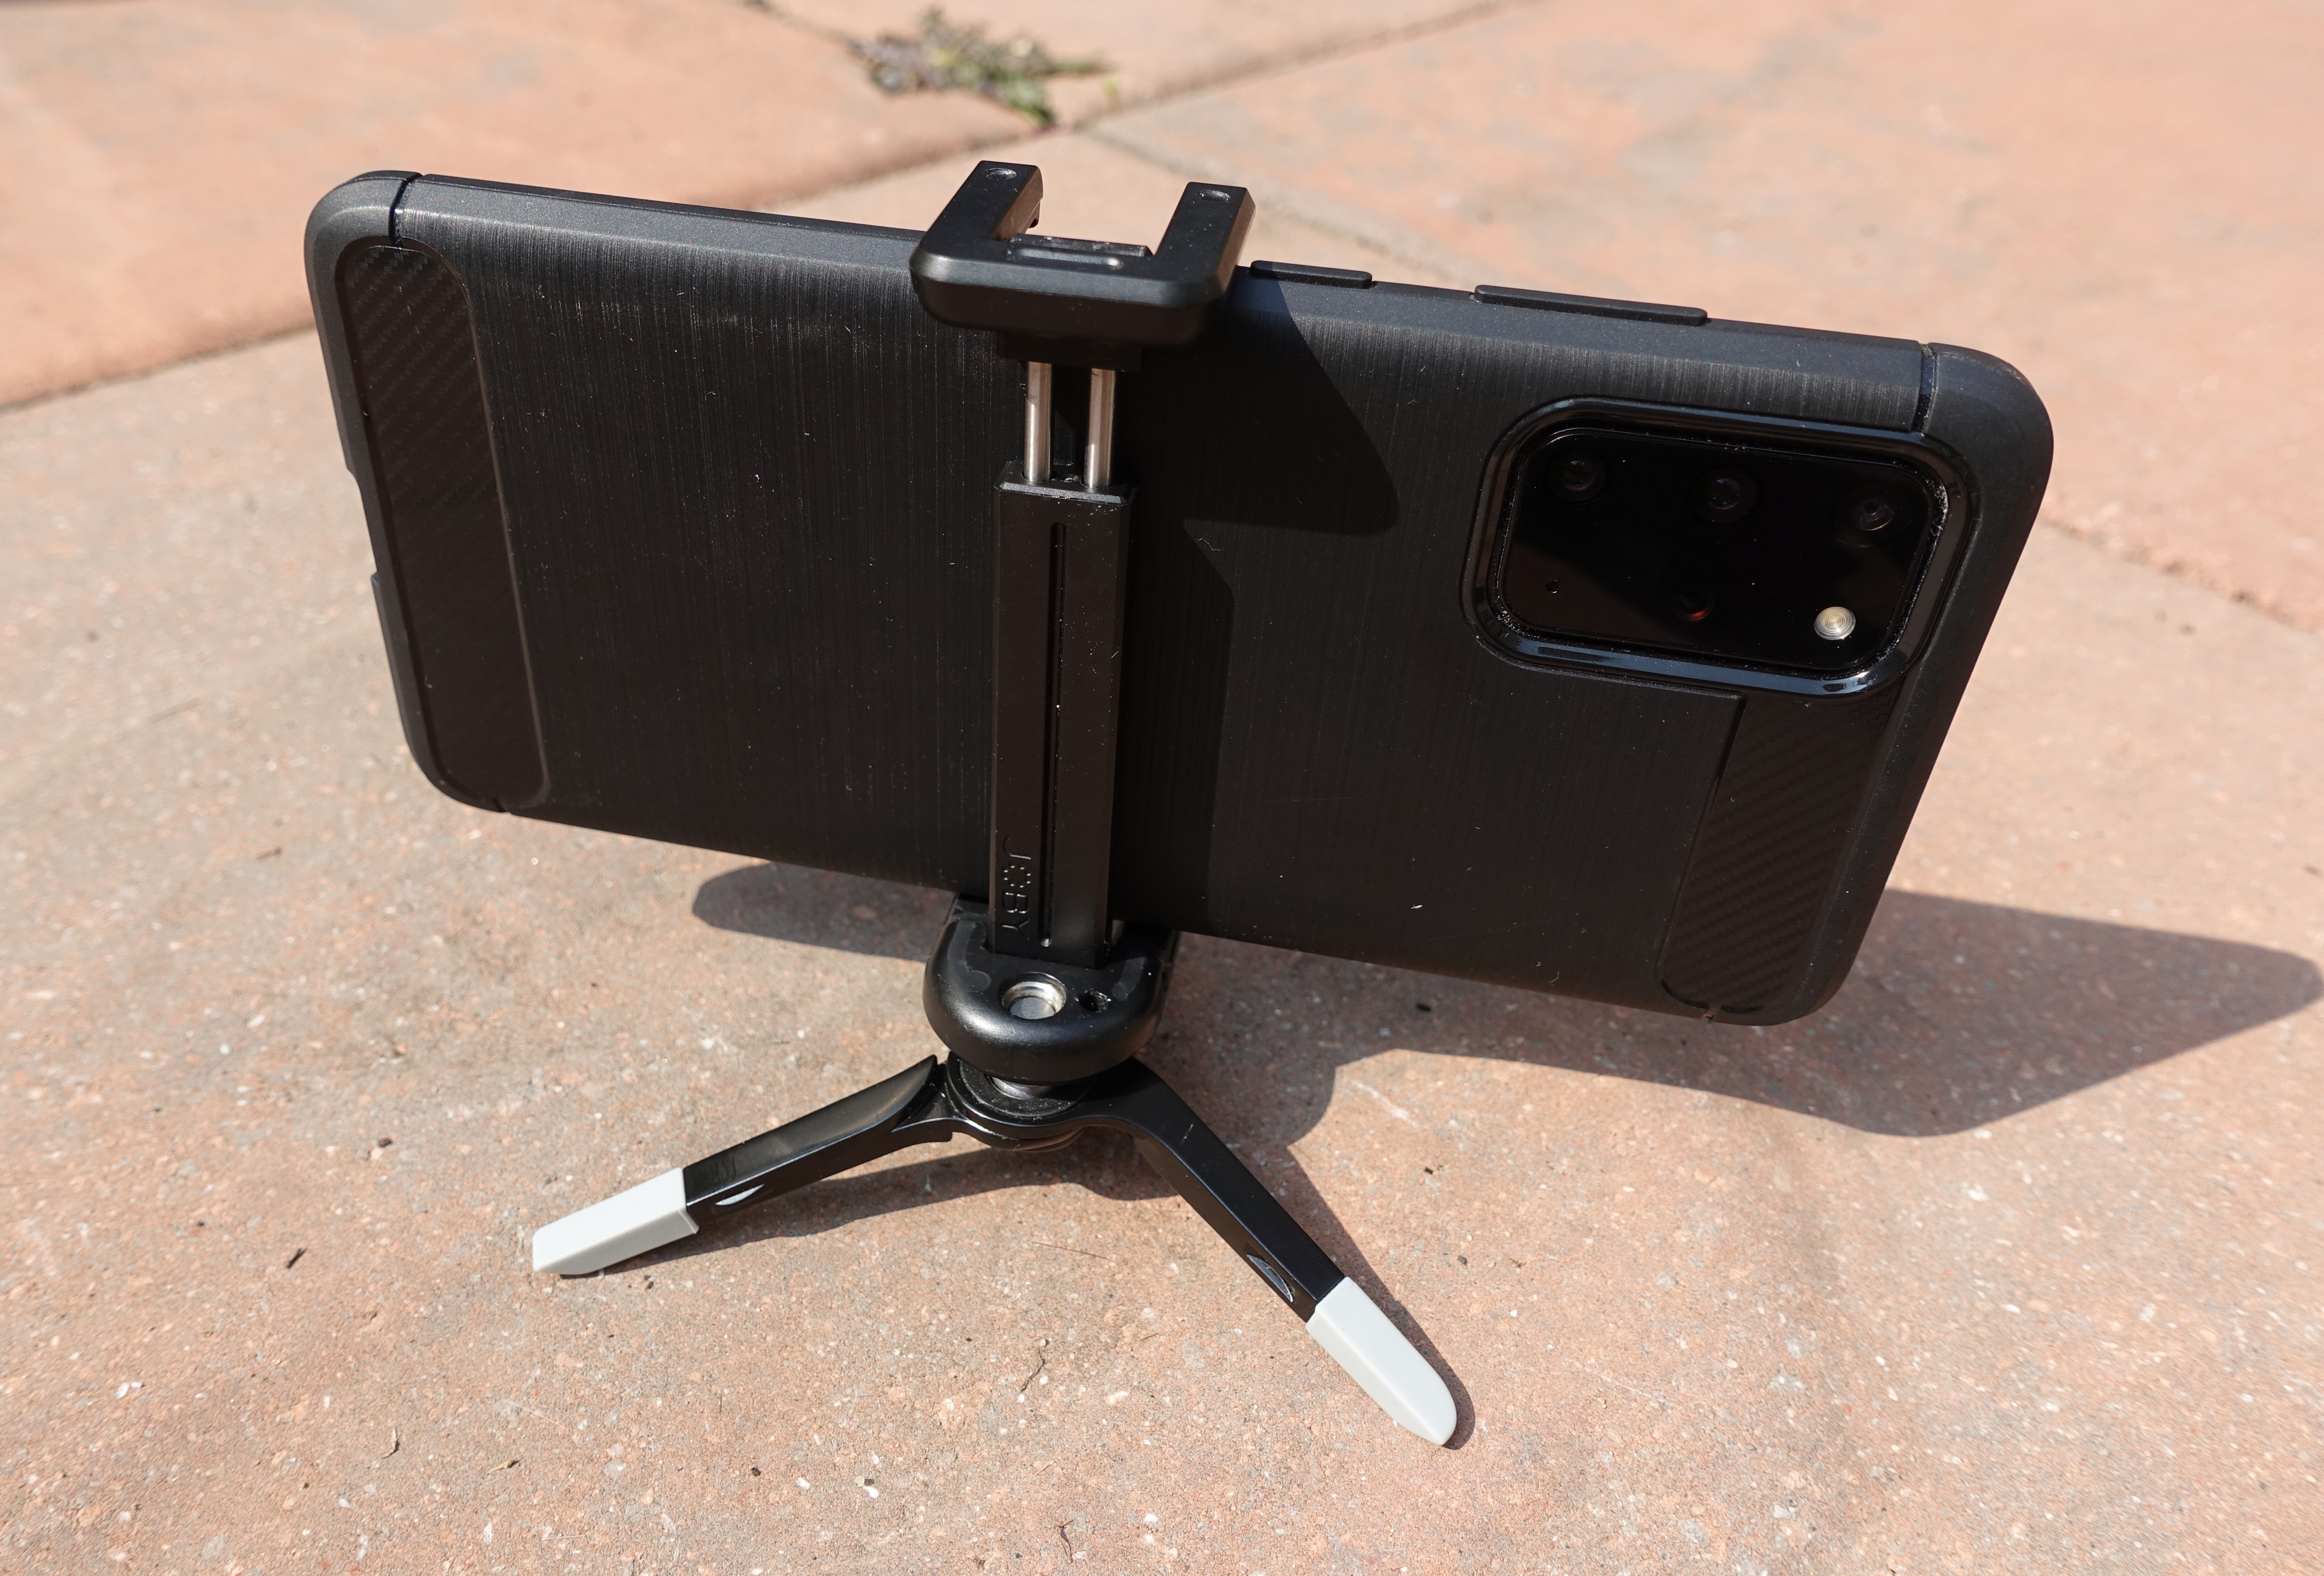 My previous set up for supporting my phone. Joby Grip Tight phone  combined with the Joby Micro tripod. This gives a very low profile that can get a little lost in vegetation. I was also often apprehensive about how well the phone was being gripped